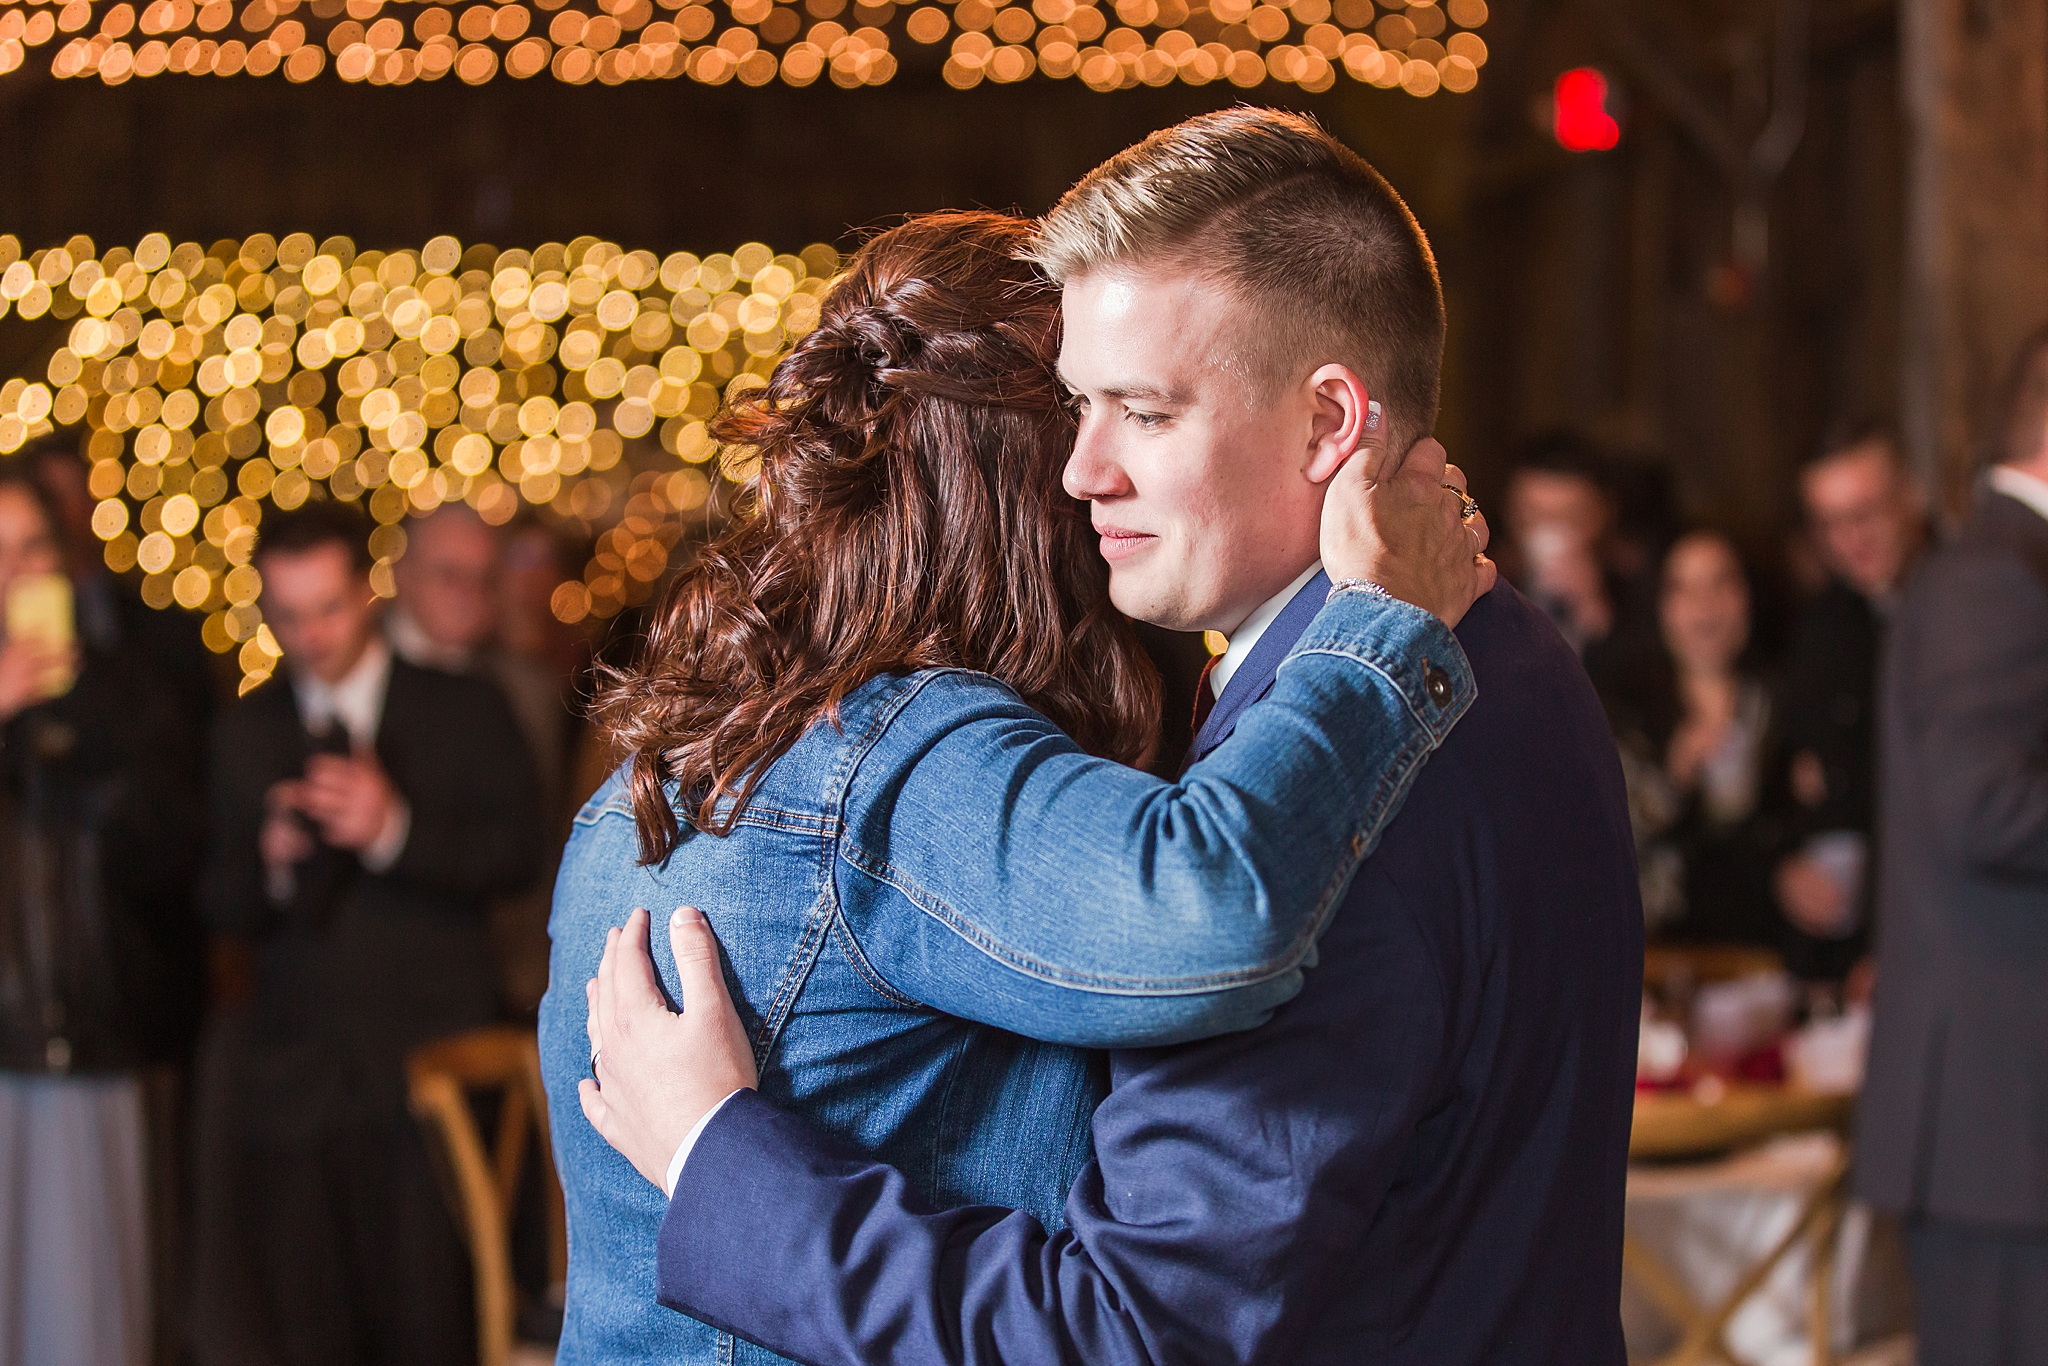 rustic-whimsical-wedding-photos-the-vale-royal-barn-in-fenton-michigan-by-courtney-carolyn-photography_0099.jpg